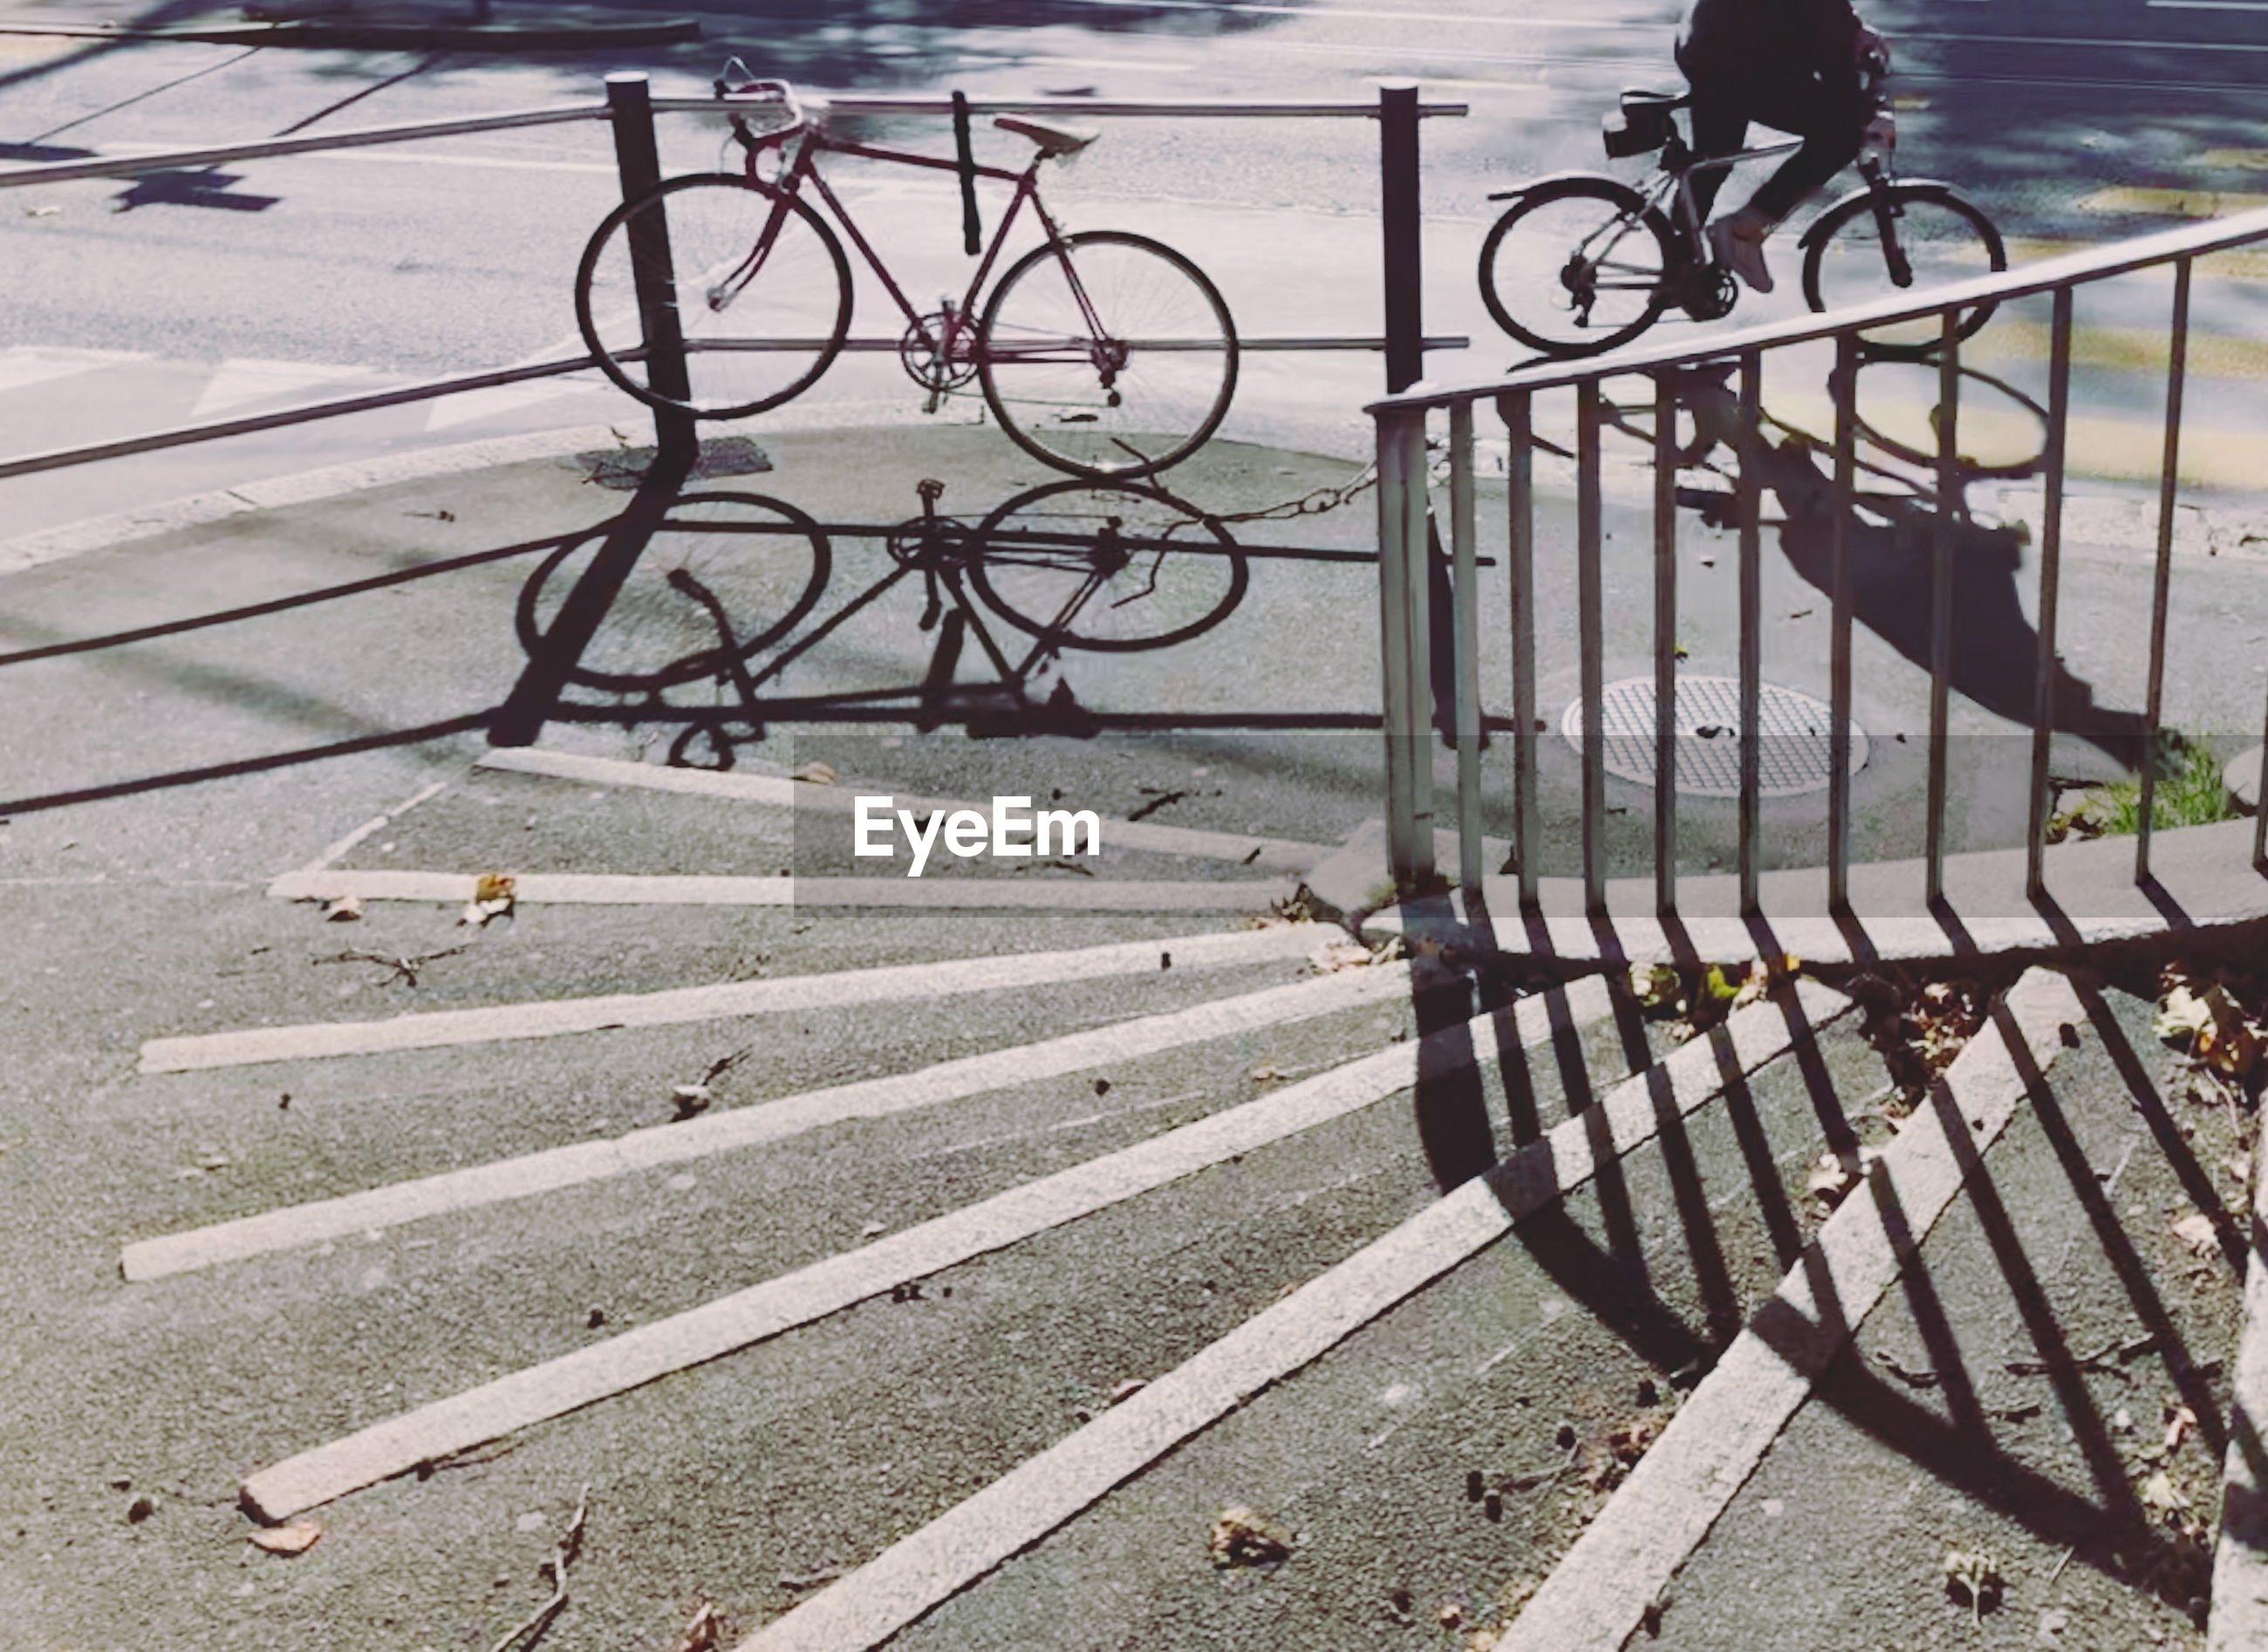 HIGH ANGLE VIEW OF BICYCLE PARKED ON STREET